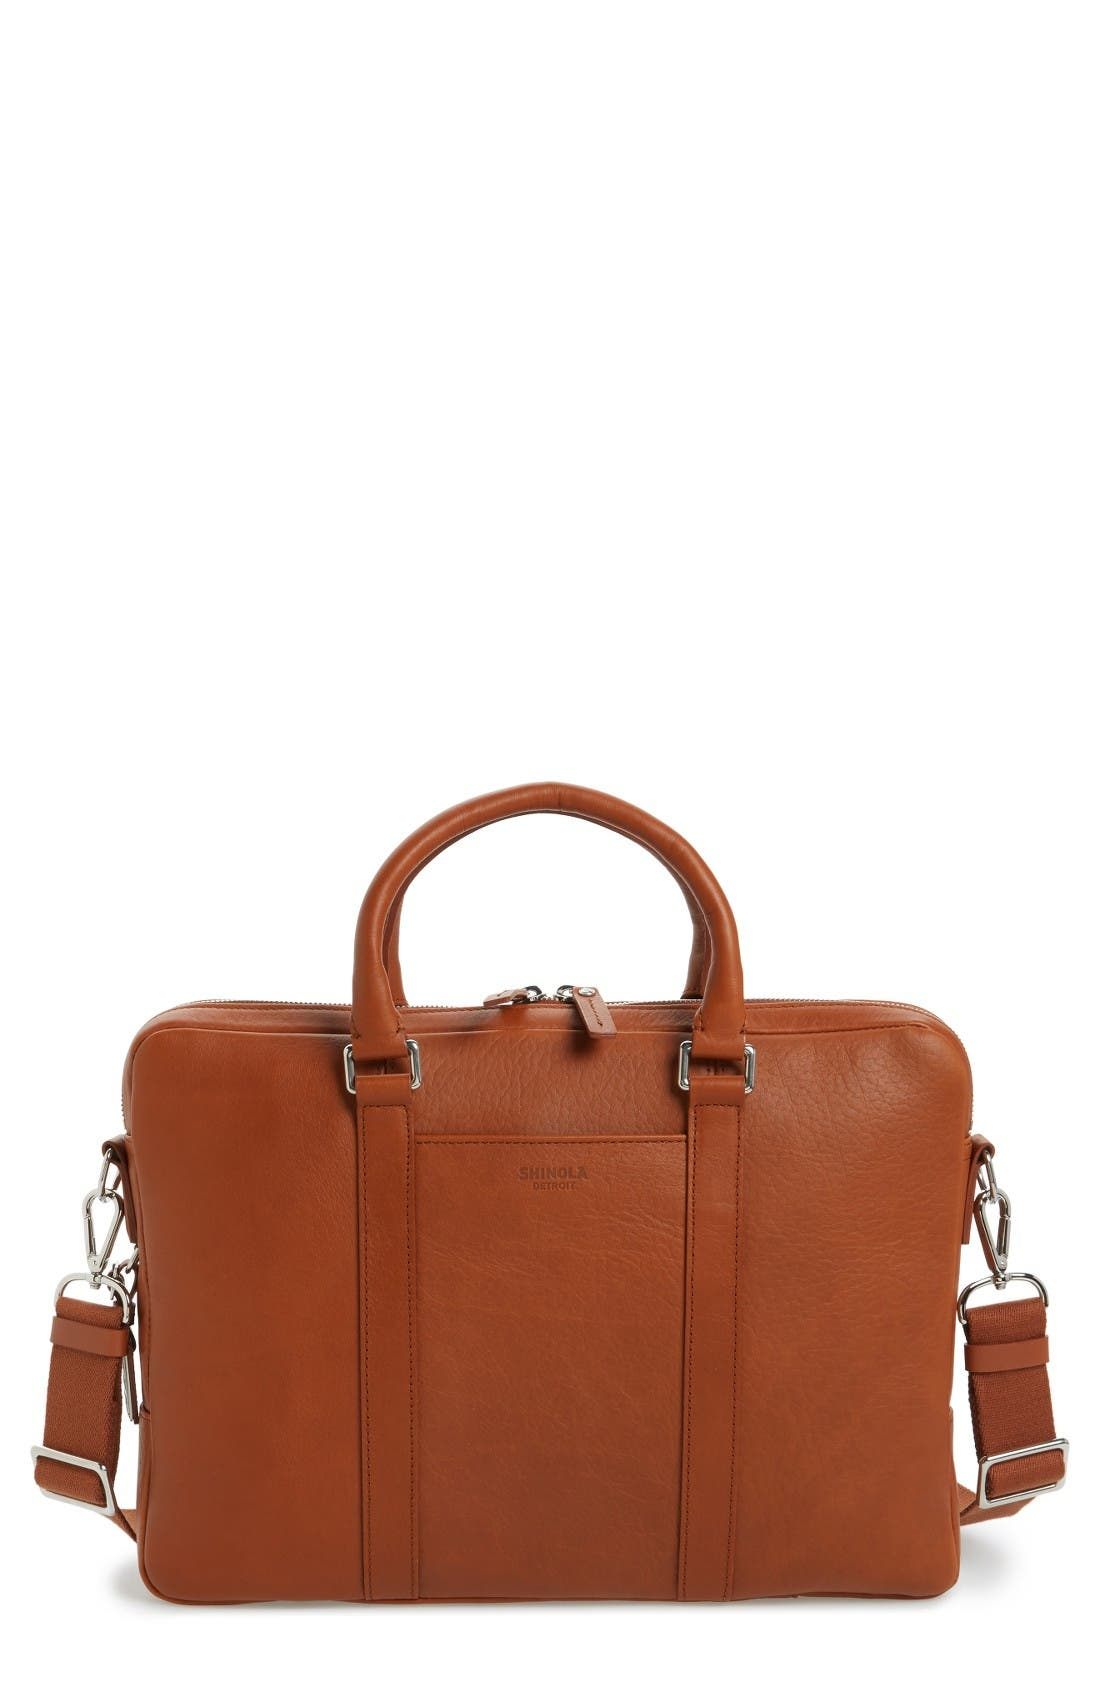 Main Image - Shinola Signature Leather Briefcase